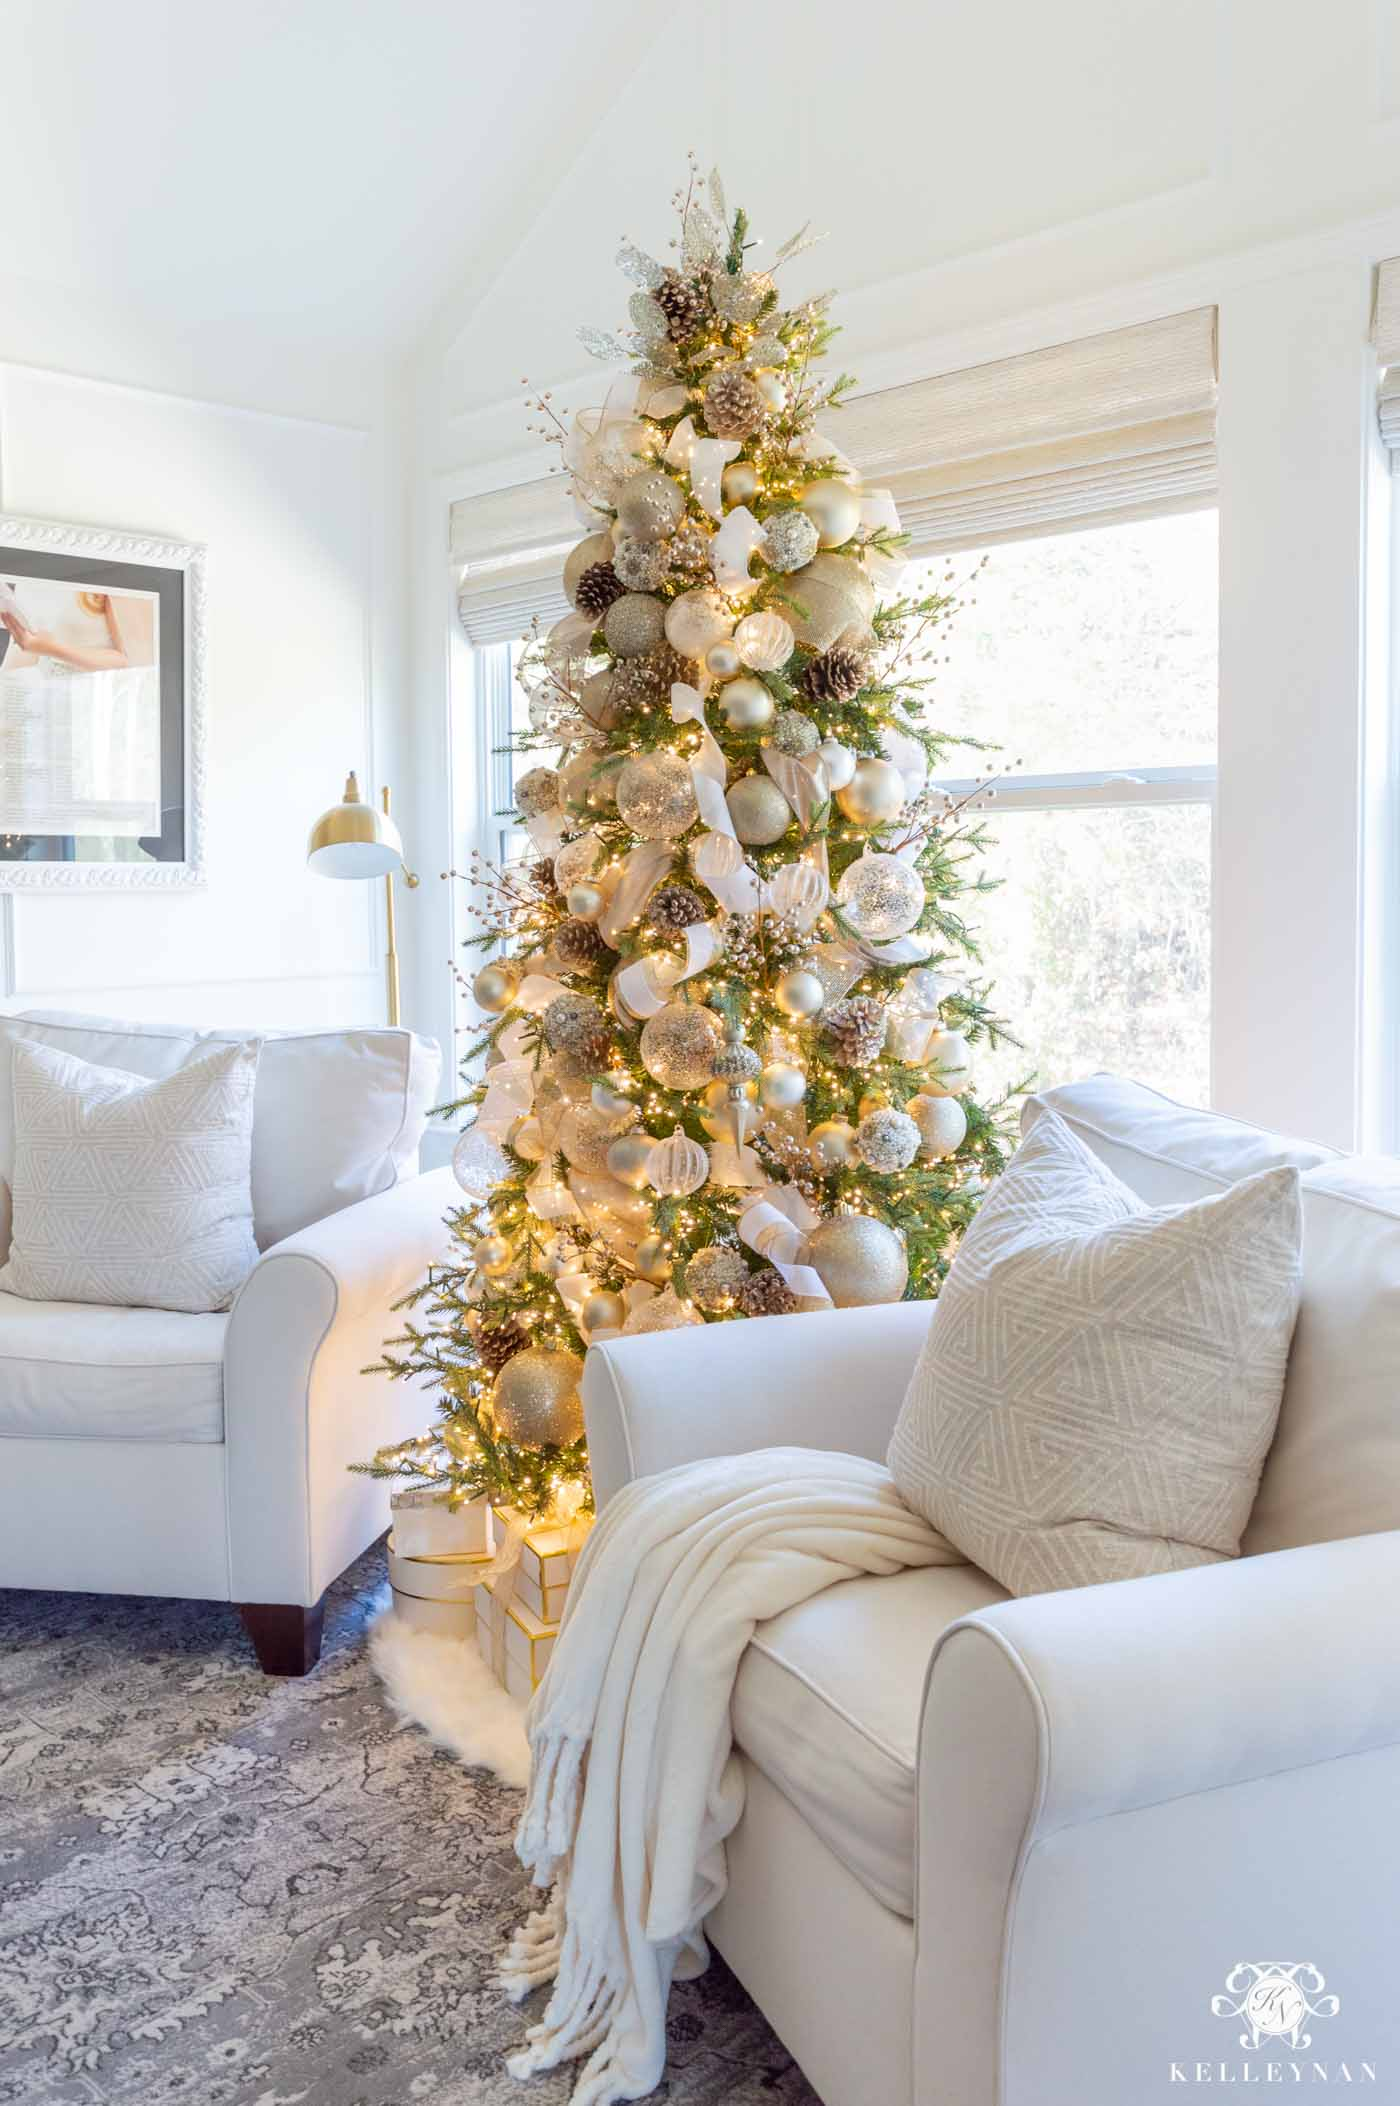 White and Gold Christmas Tree in the Bedroom